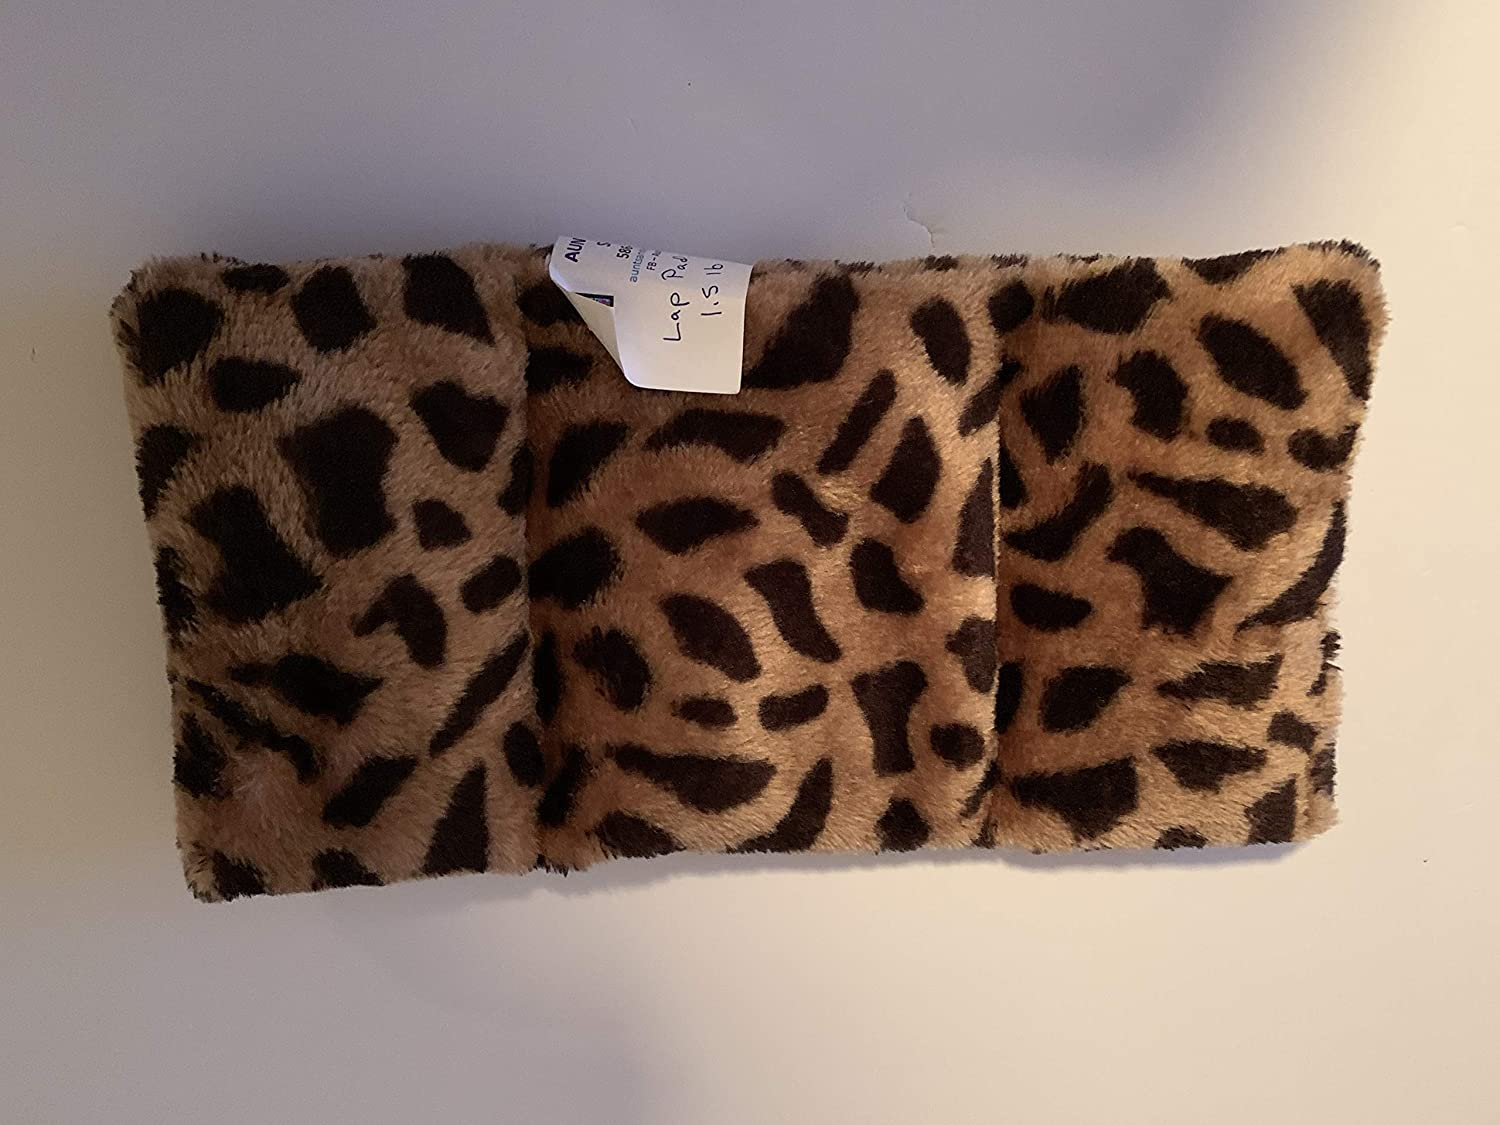 1 1//2 lbs faux fur lap pad Weighted Lap Pad washable